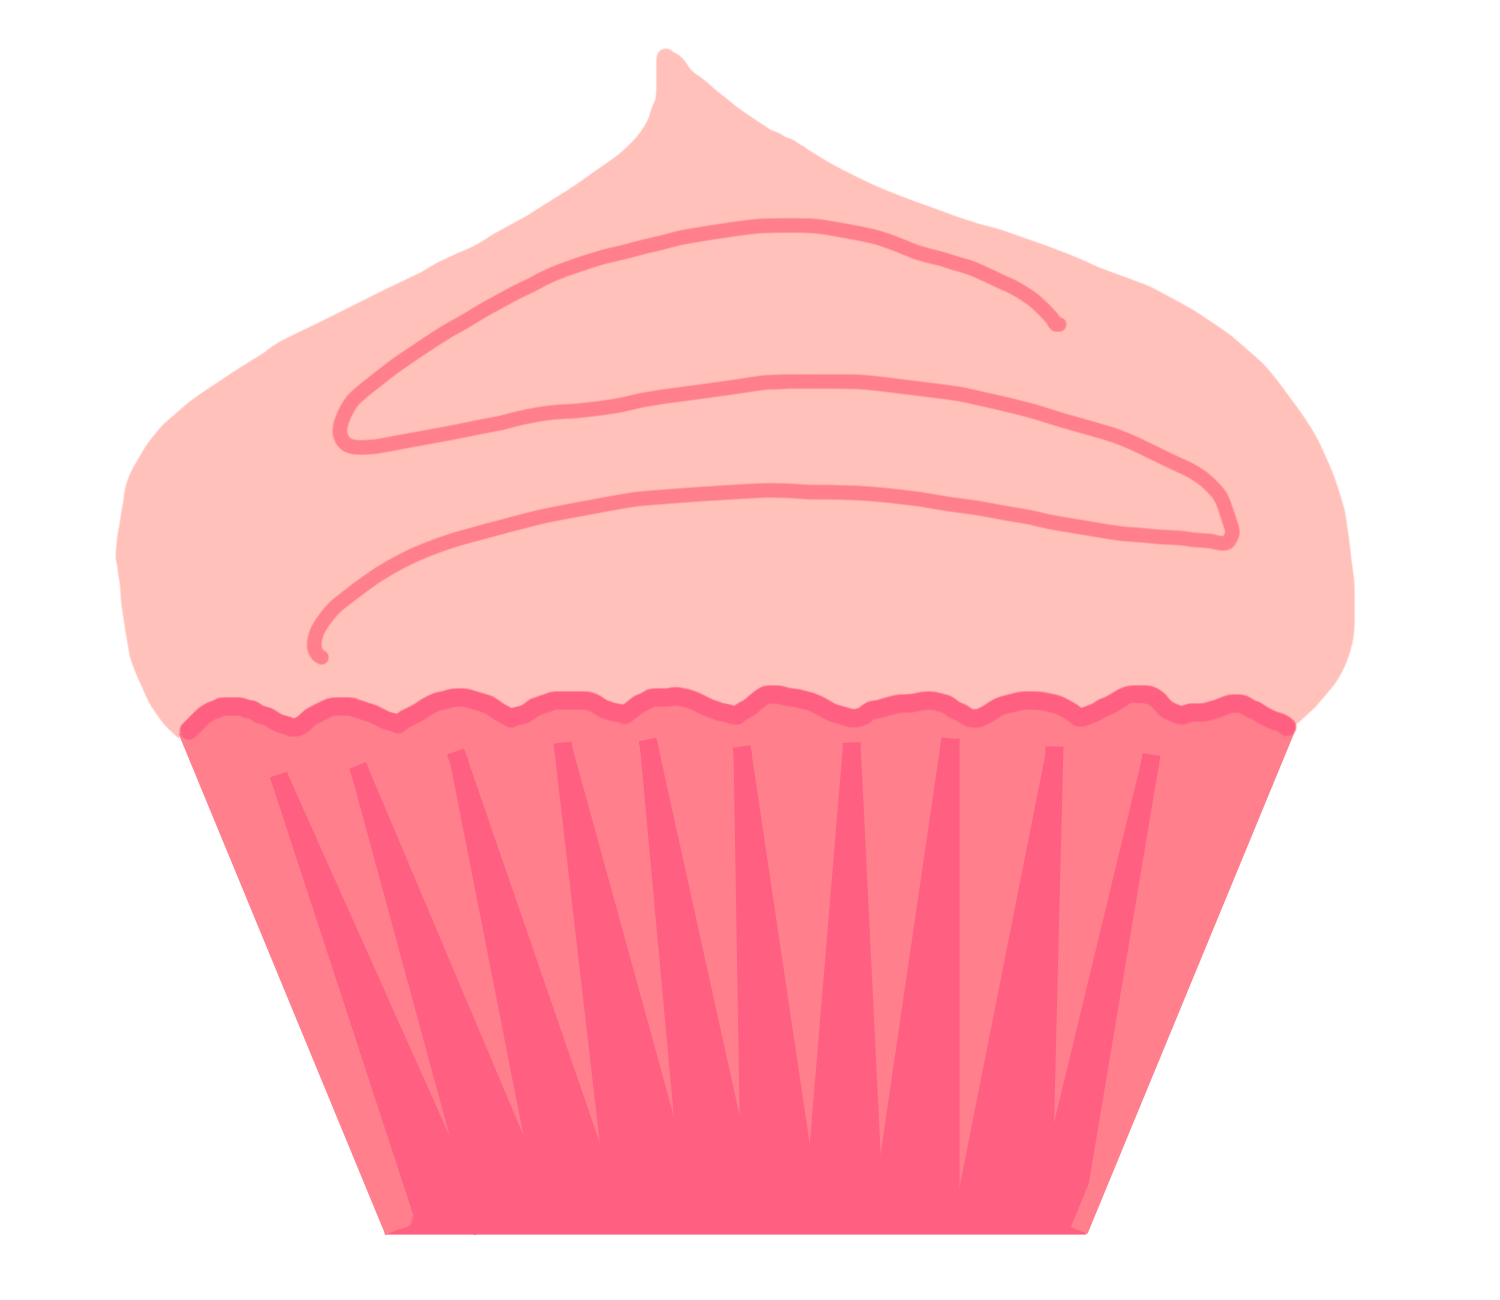 Cupcake Clipart Png - ClipArt Best